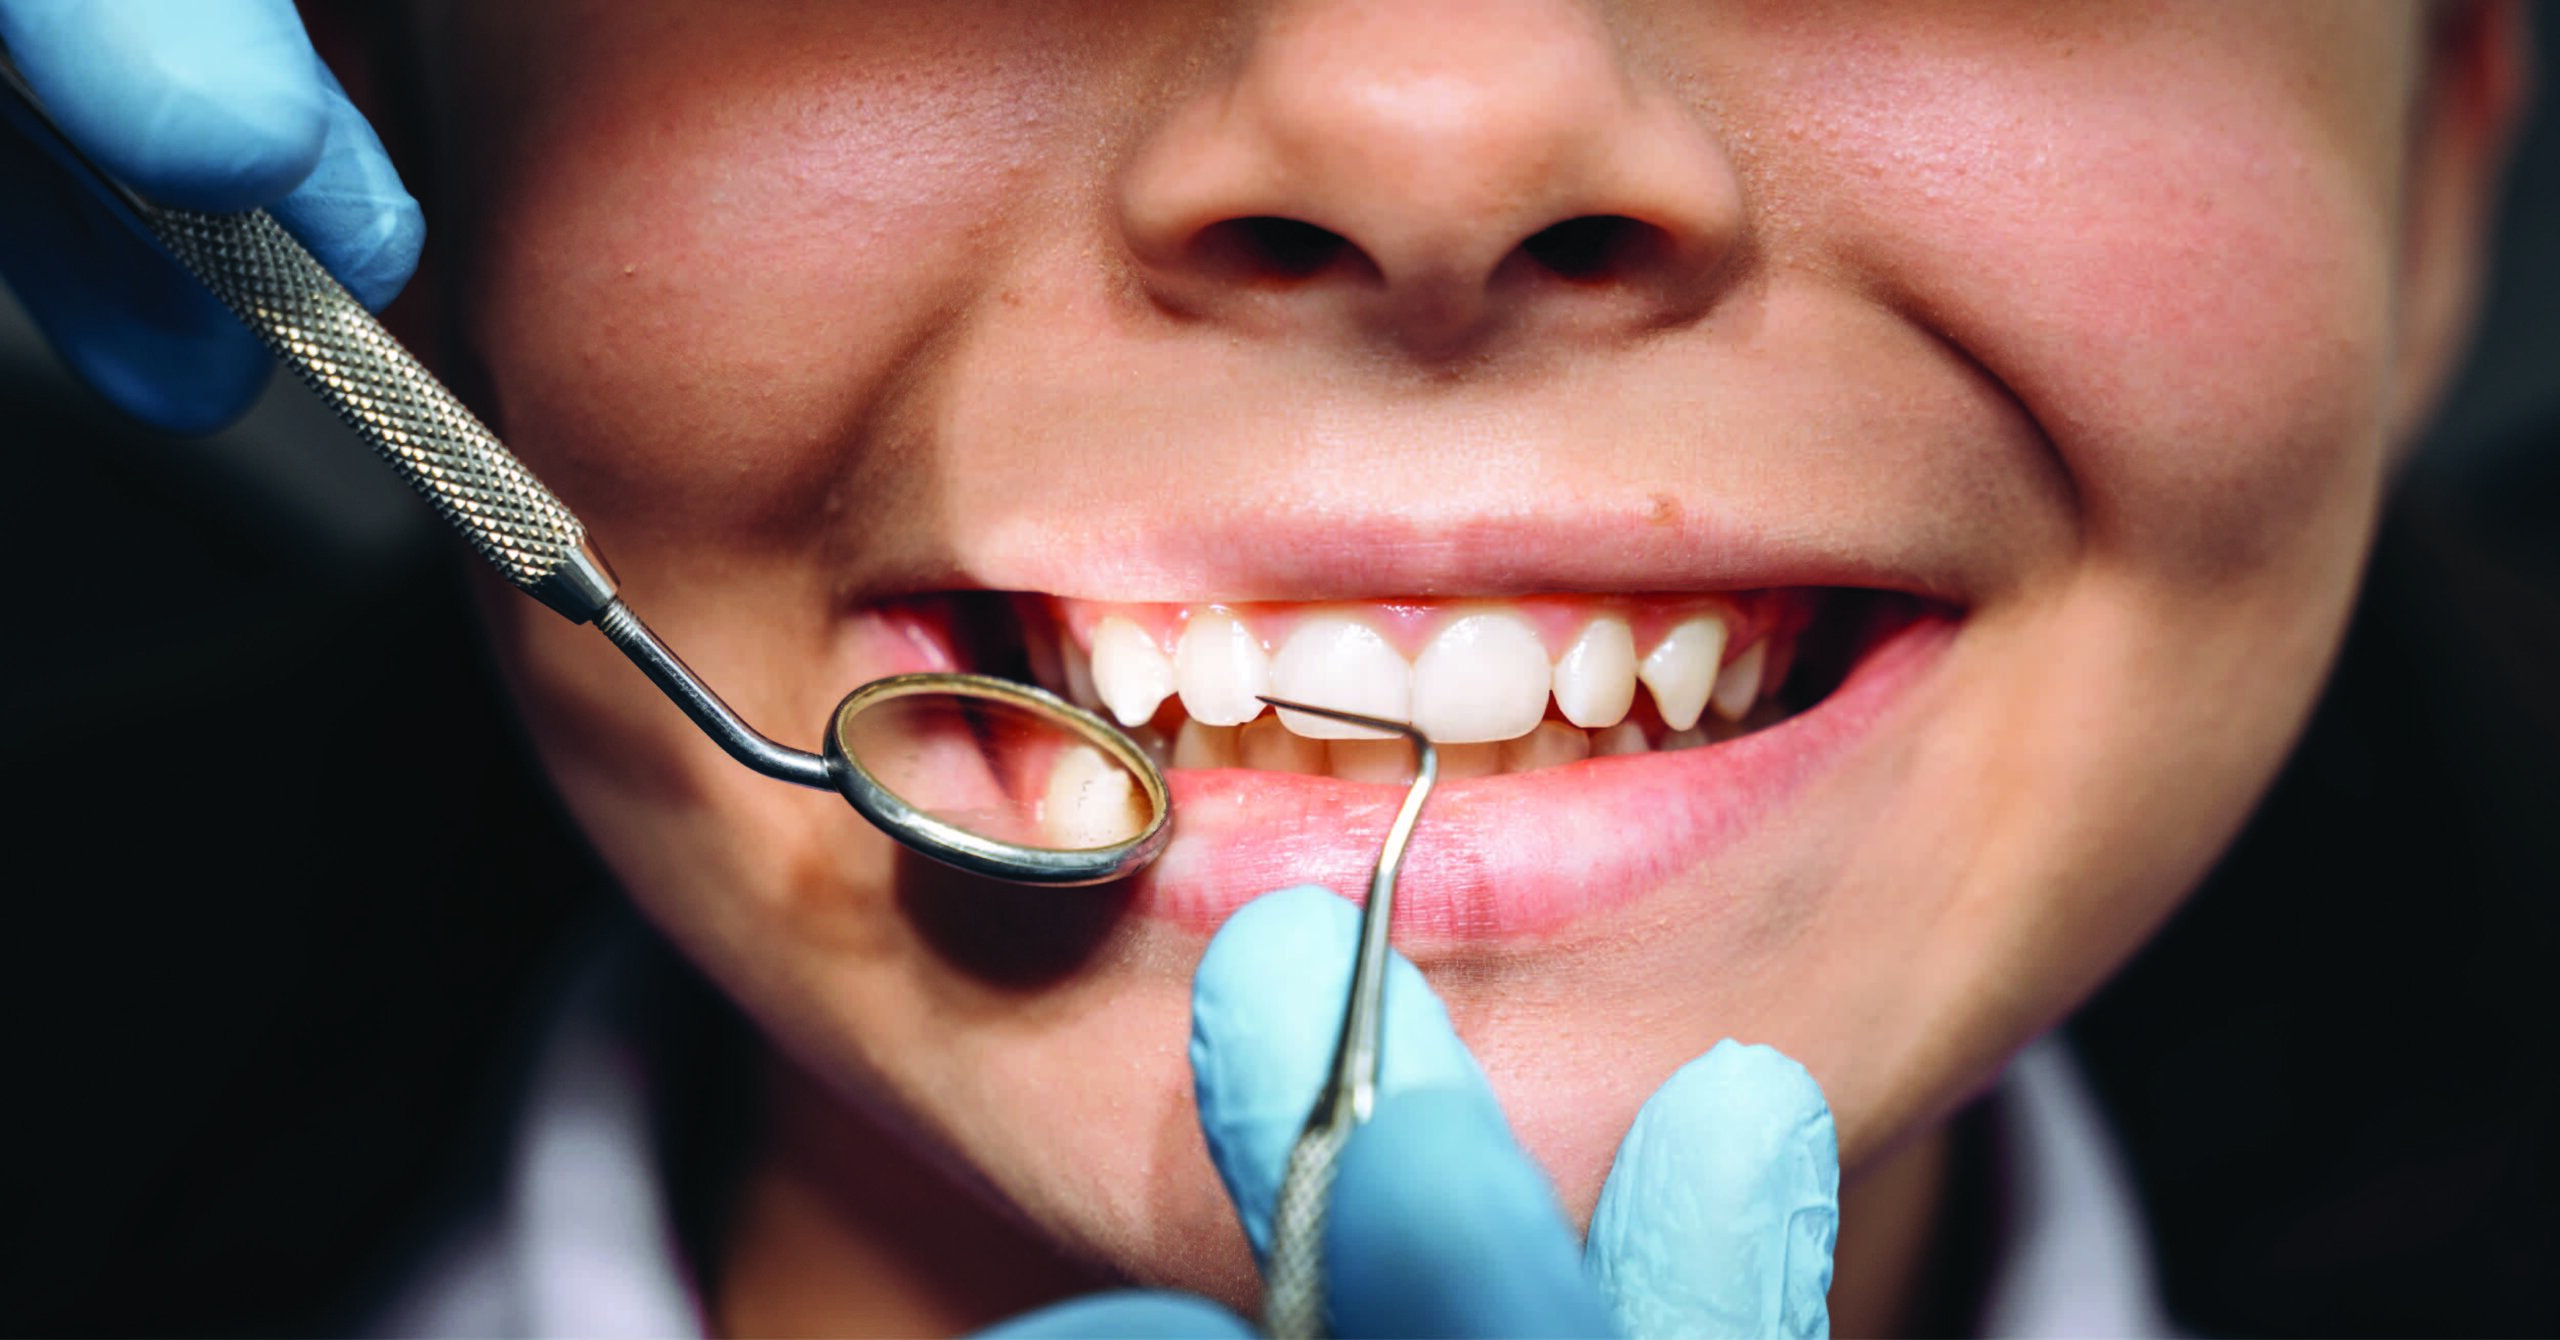 ARE TEETH CLEANINGS NECESSARY?